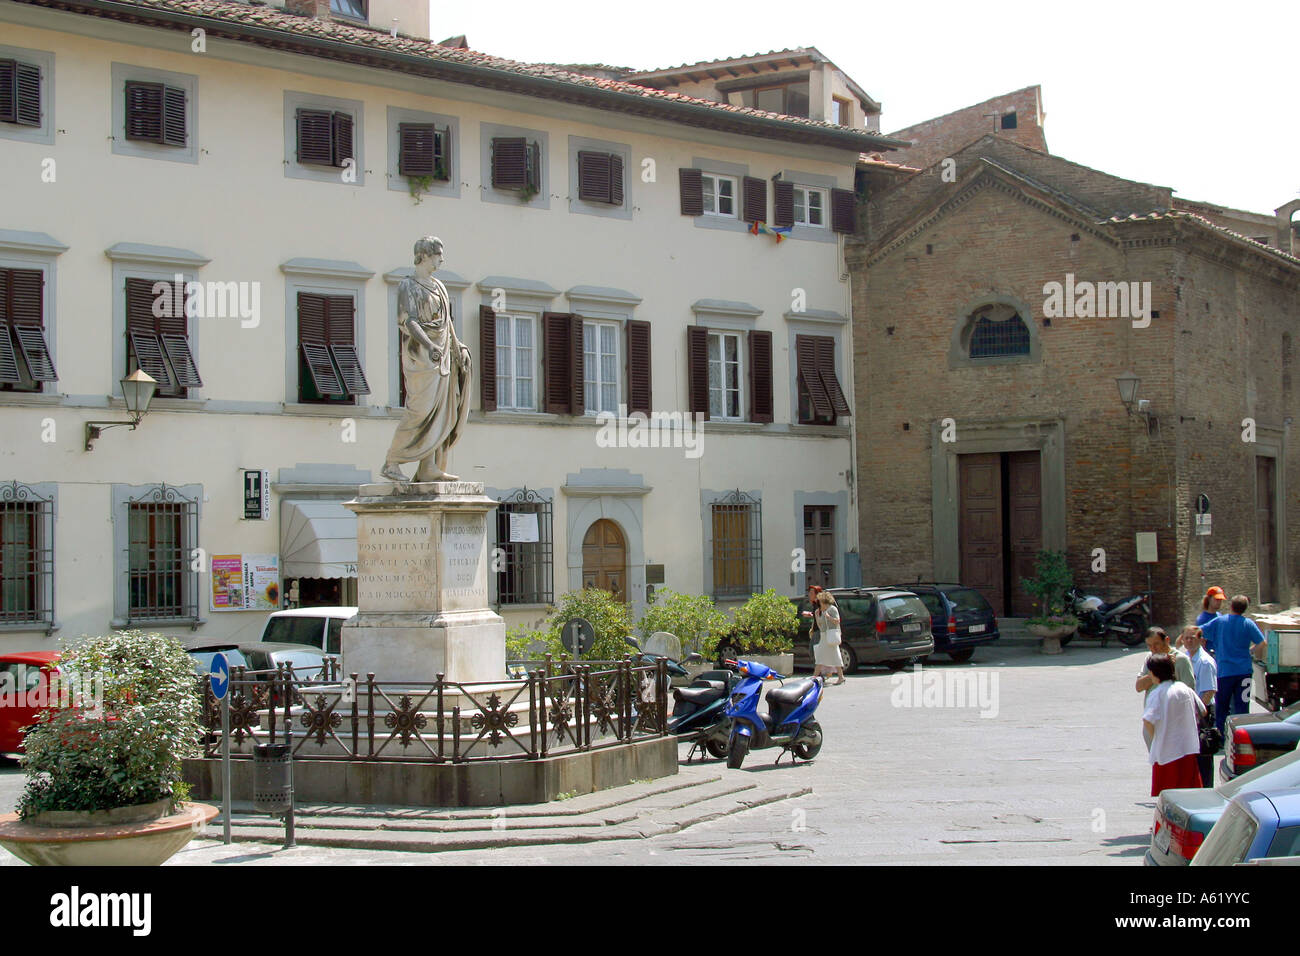 Buonaparte square San Miniato Tuscany Italy Stock Photo